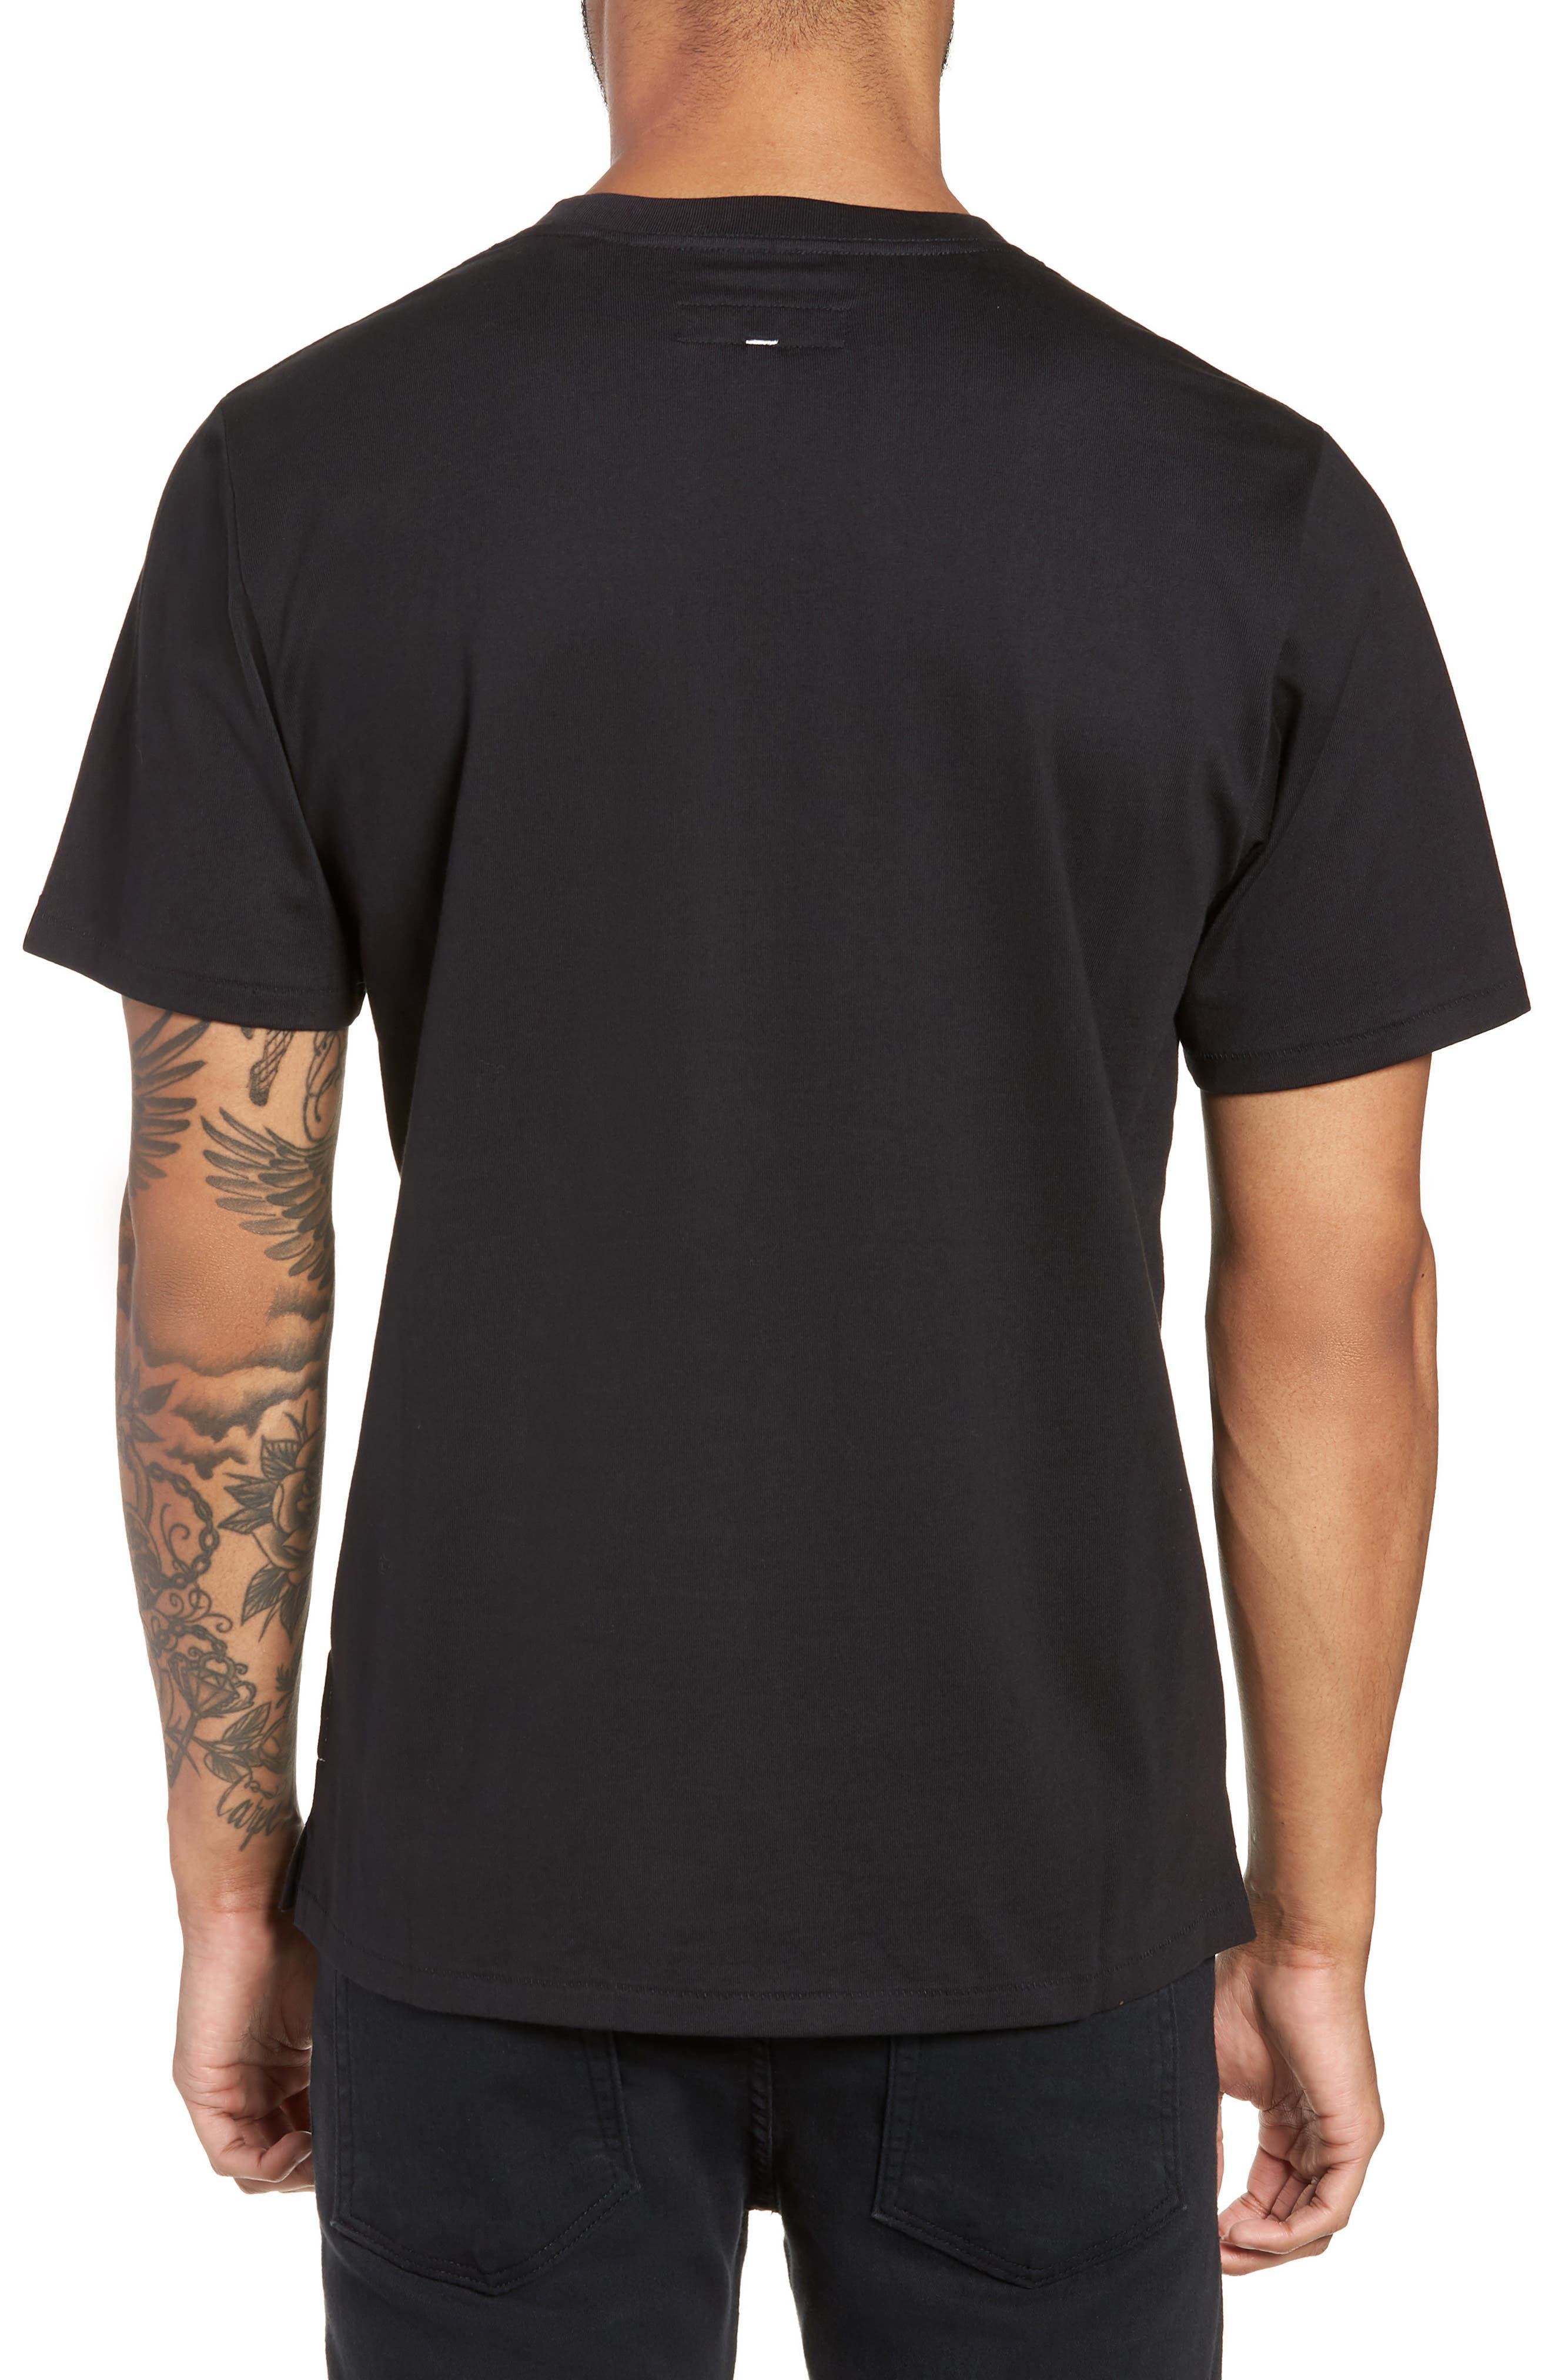 Yin Yang Graphic T-Shirt,                             Alternate thumbnail 2, color,                             001